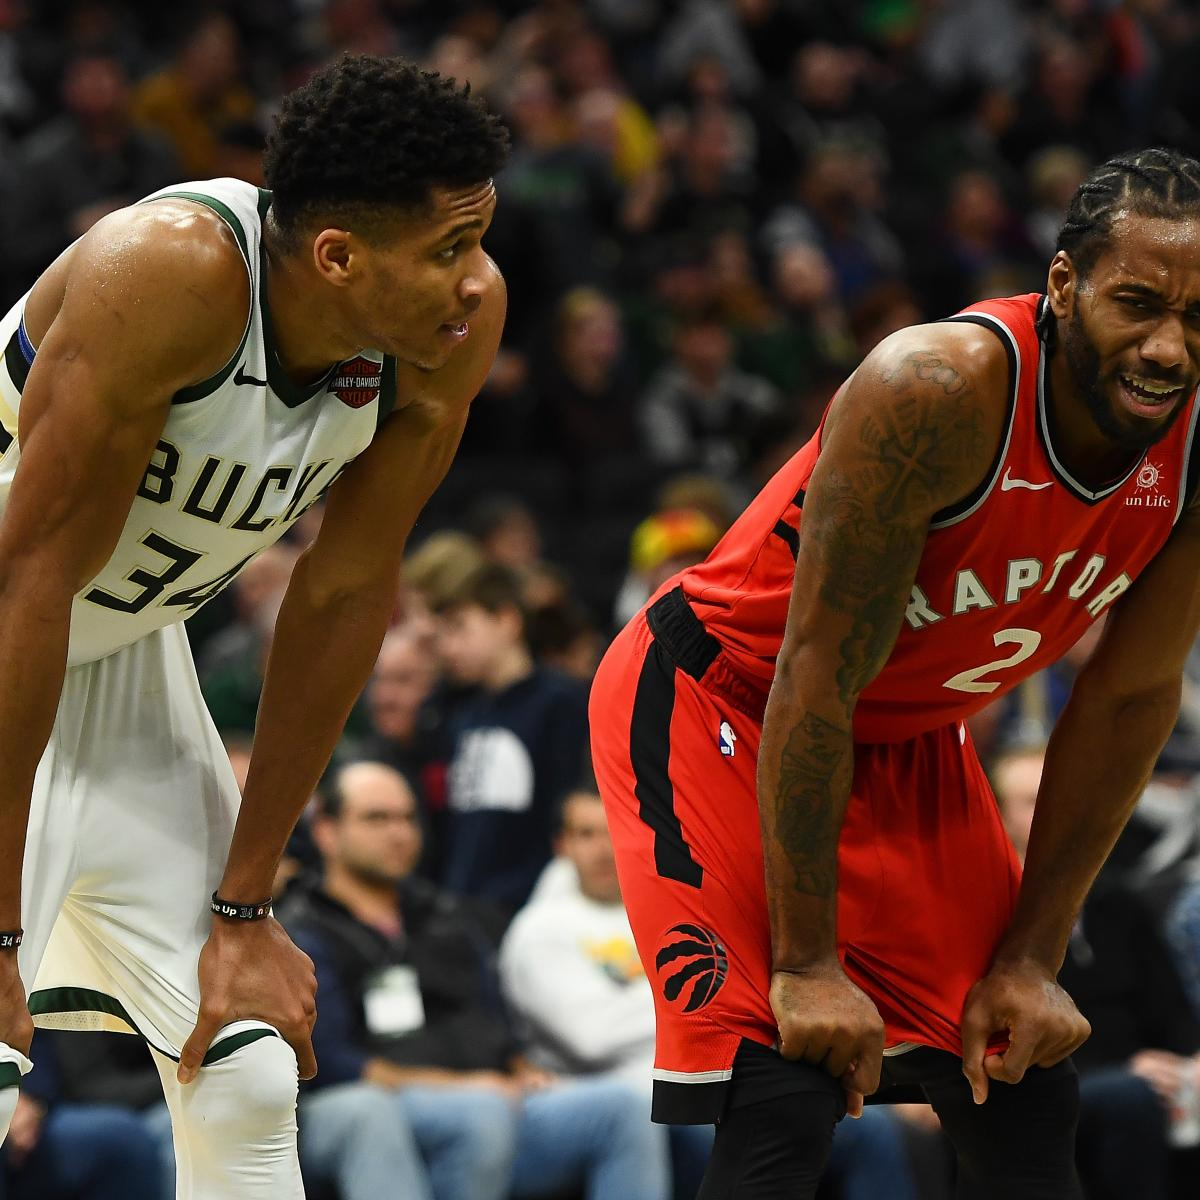 Bleacher Report Nba Staff S 2019 Playoff Predictions: NBA Playoff Schedule 2019: TV Guide And Predictions For